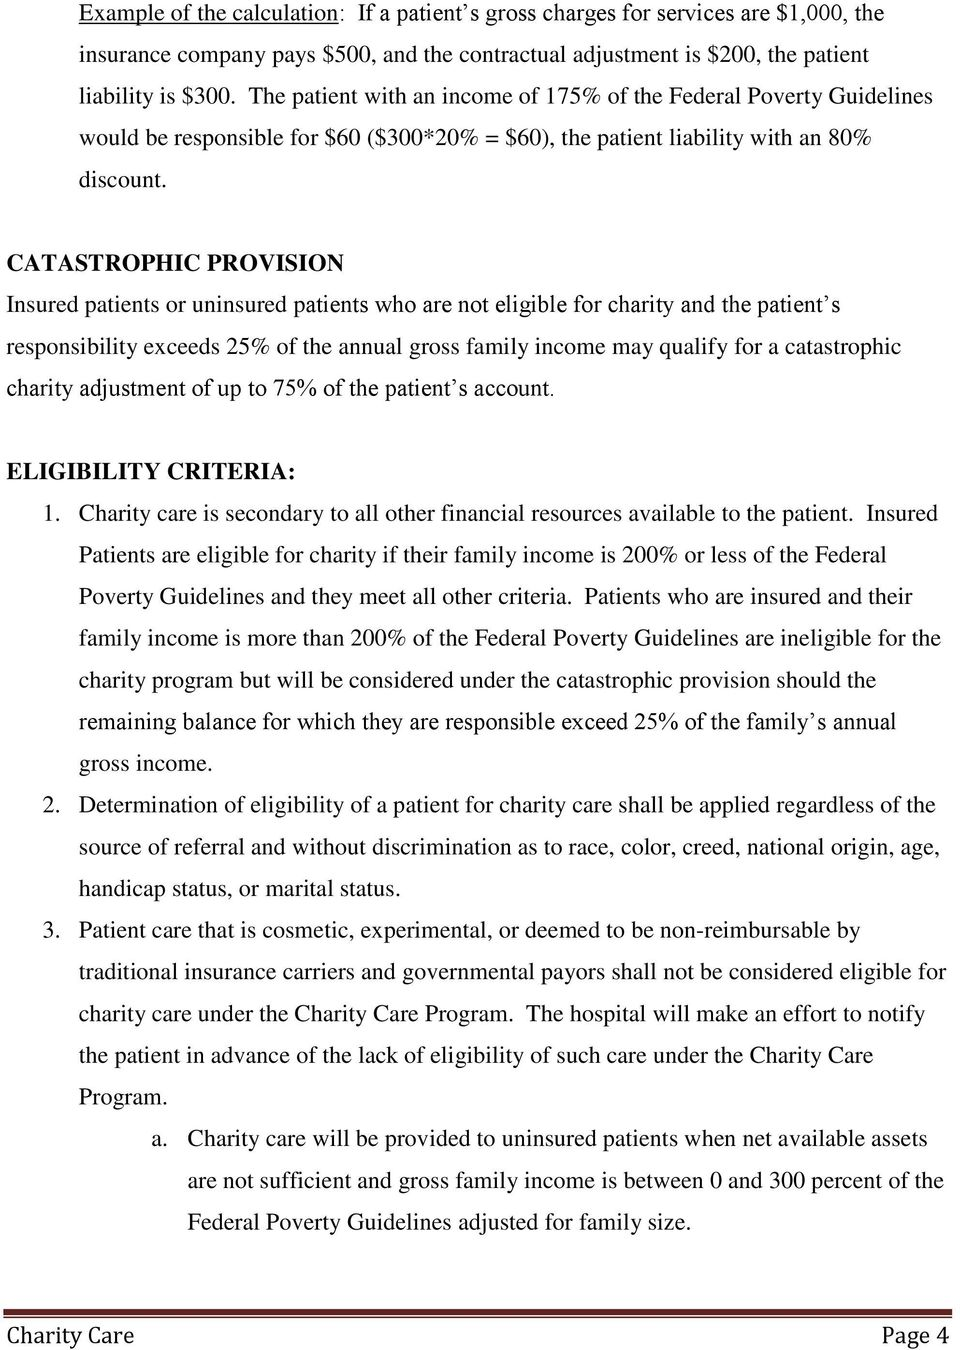 CATASTROPHIC PROVISION Insured patients or uninsured patients who are not eligible for charity and the patient s responsibility exceeds 25% of the annual gross family income may qualify for a